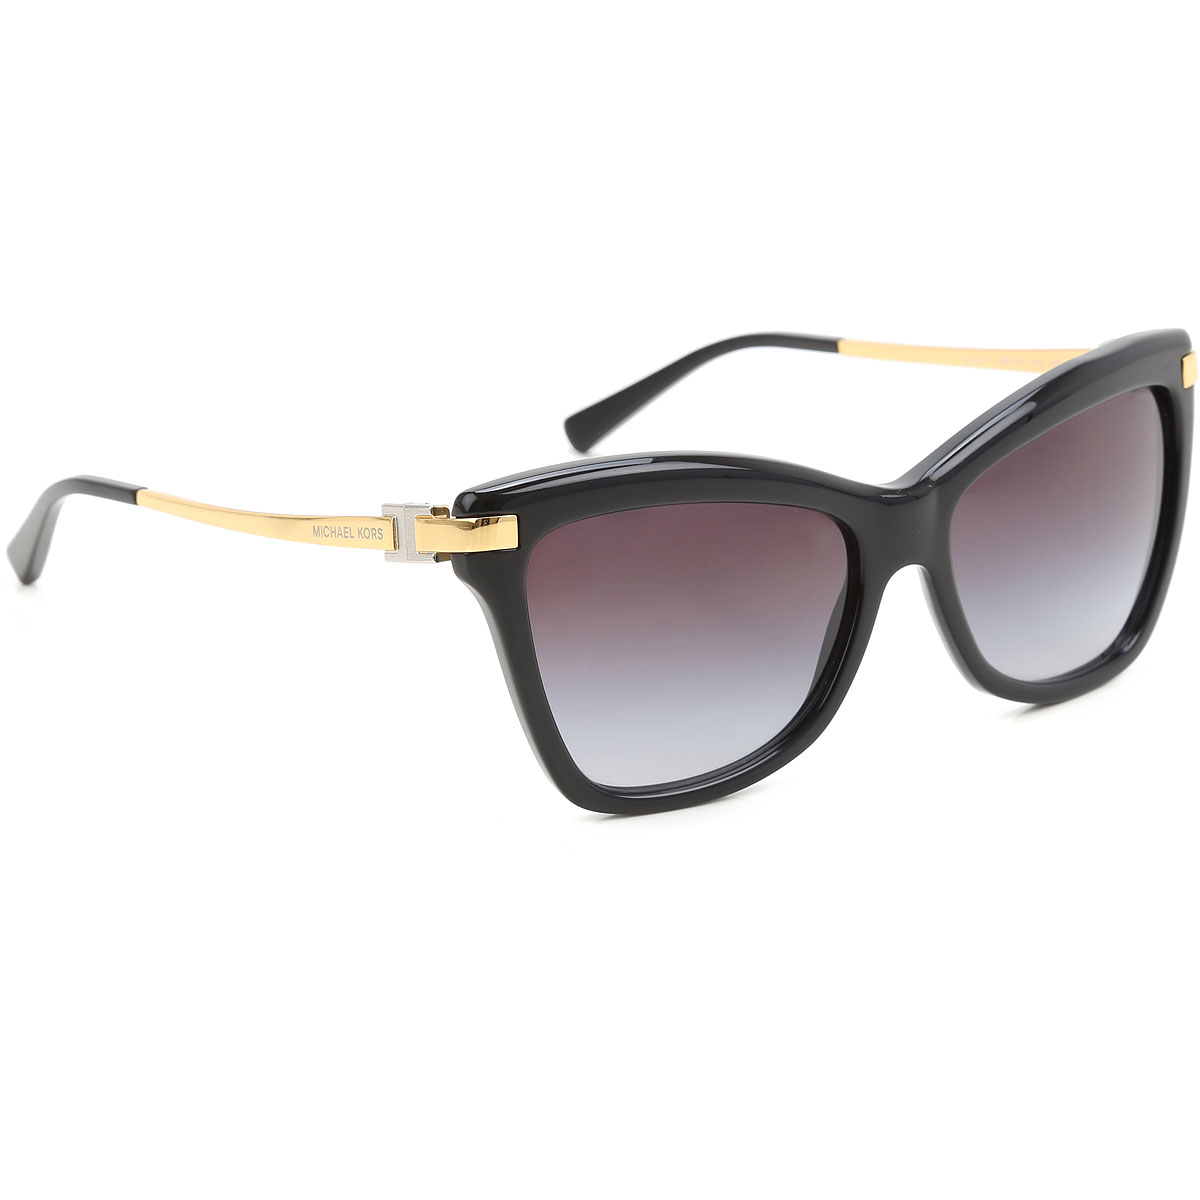 ... Michael Kors Sunglasses. FULL SCREEN. 1) Drag to view product 2) Double  click to start rotation ab9959bd15